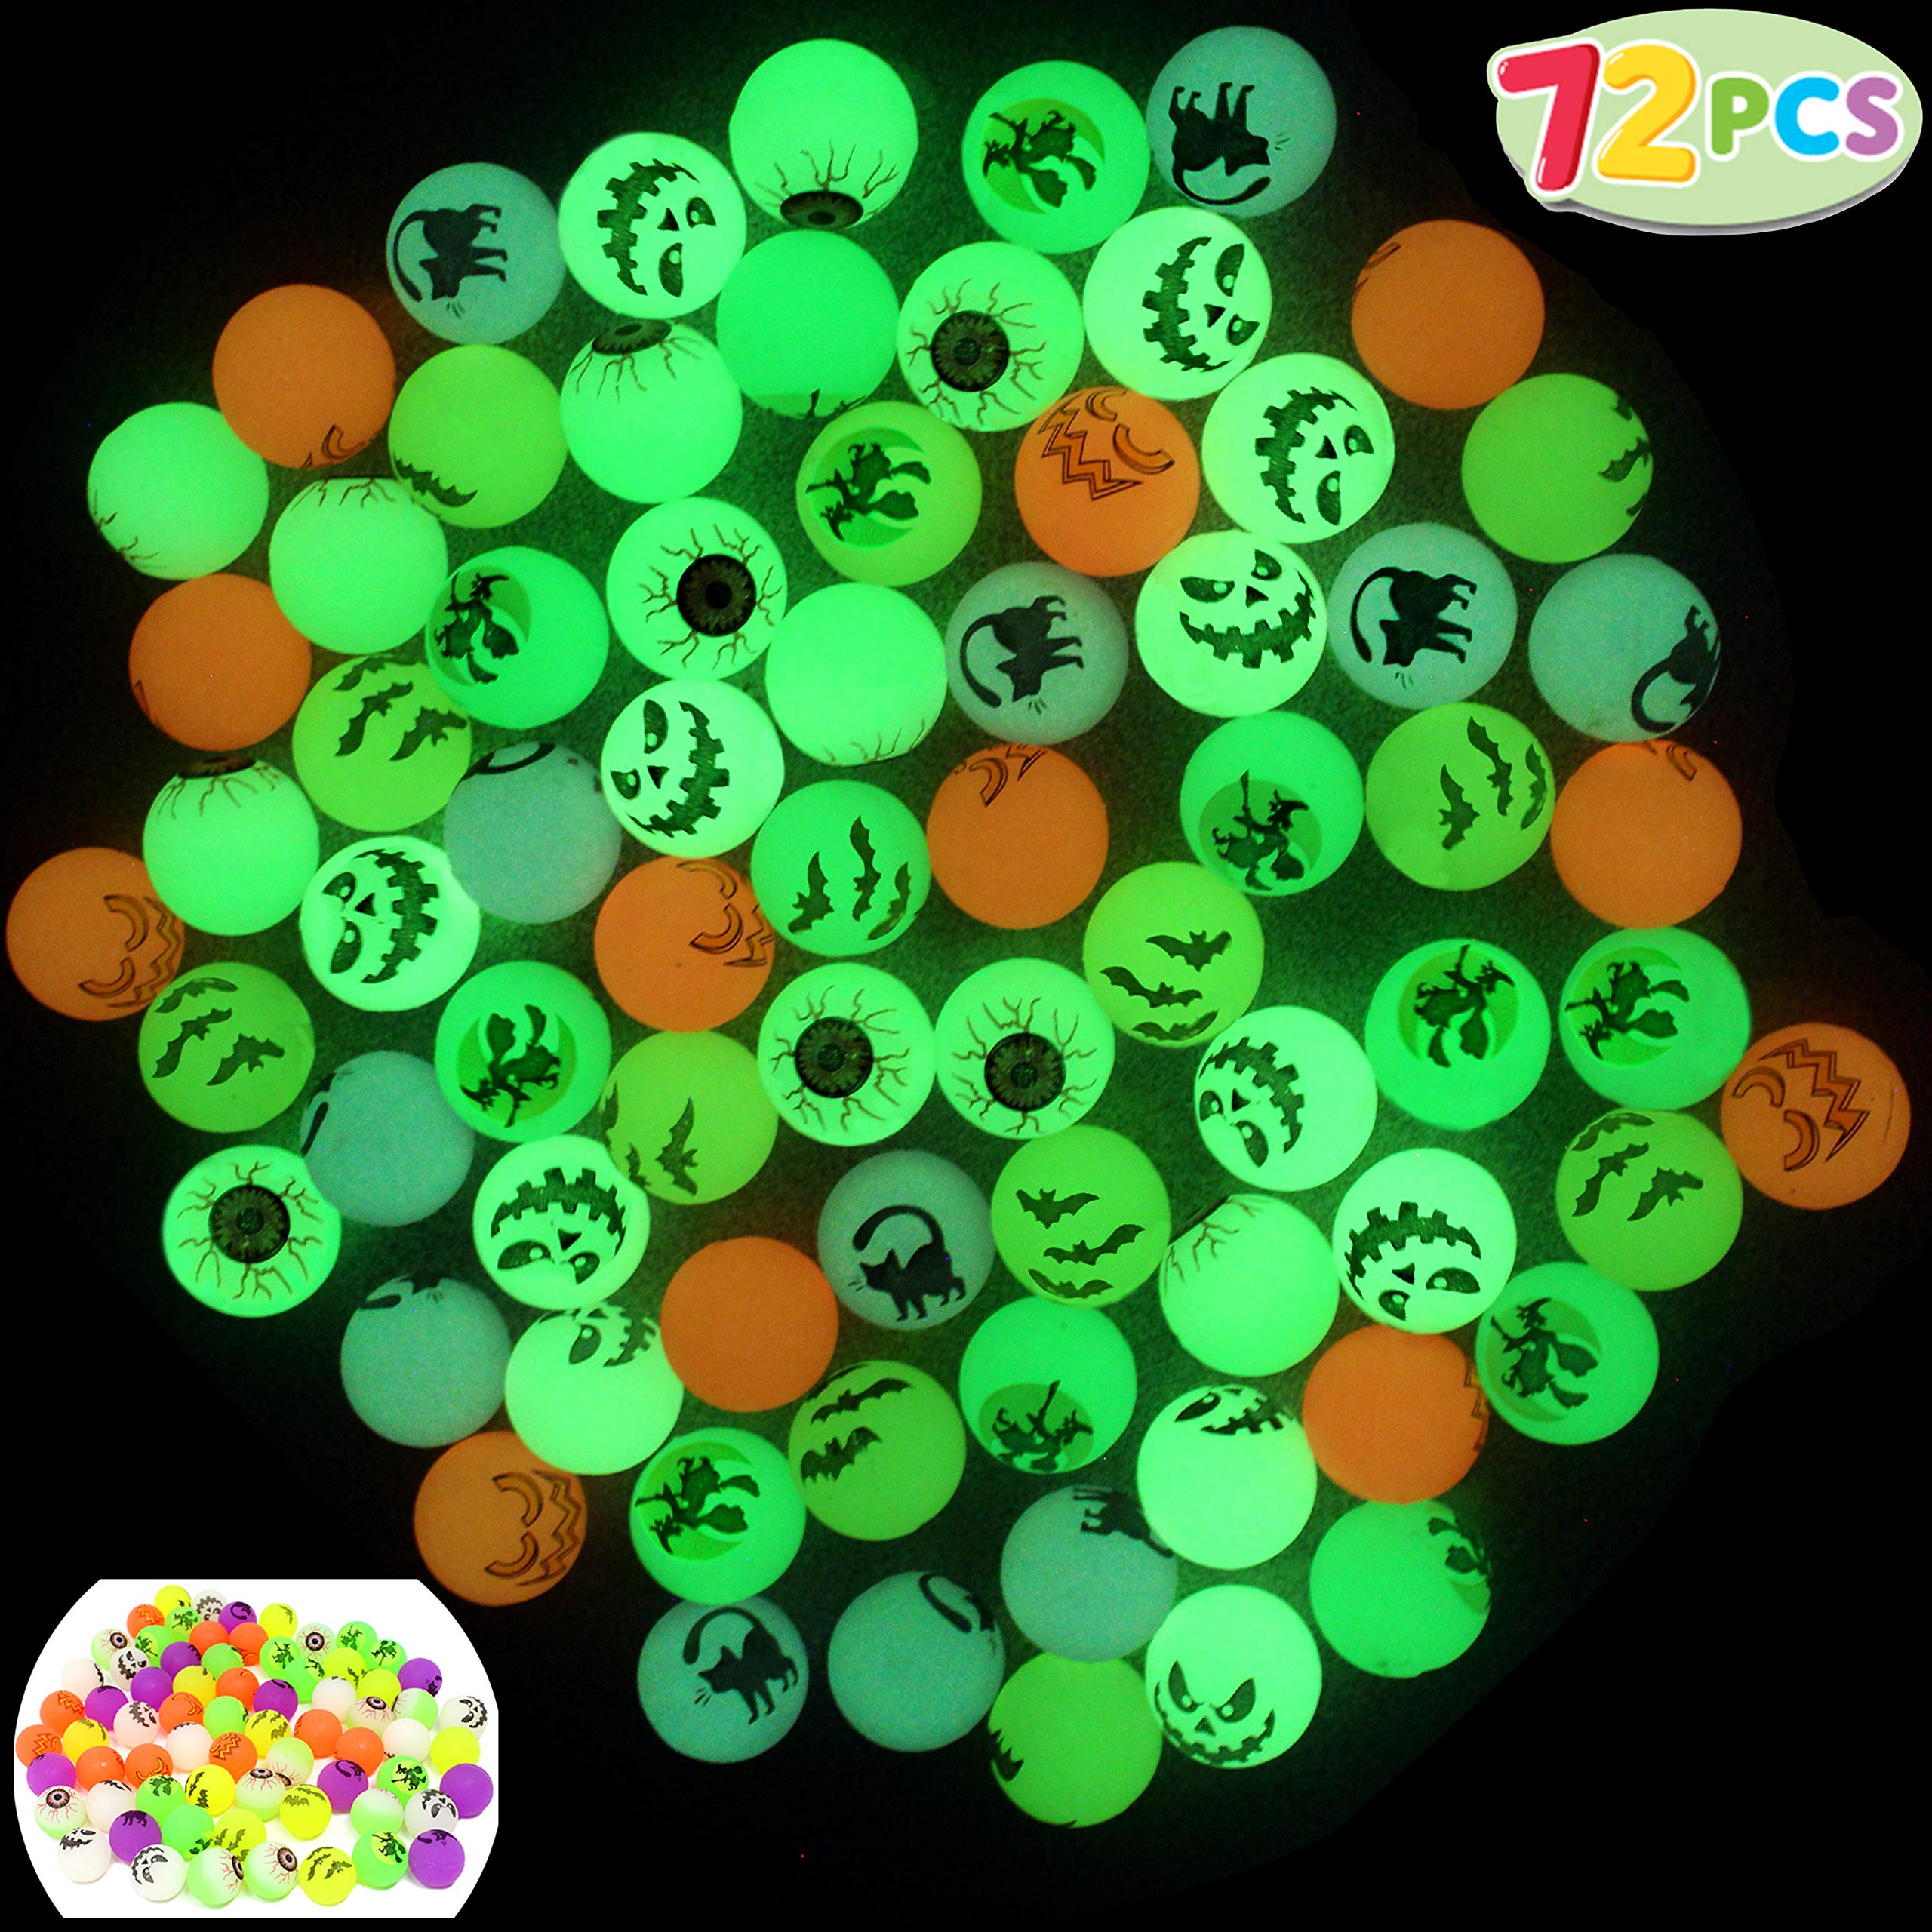 JOYIN 72 Glow in The Dark Bouncing Balls 1.25'' | 6 Halloween Theme Designs | for Halloween Bouncy Party Favor Supplies, School Classroom Game Rewards, Trick or Treating Goodie by JOYIN